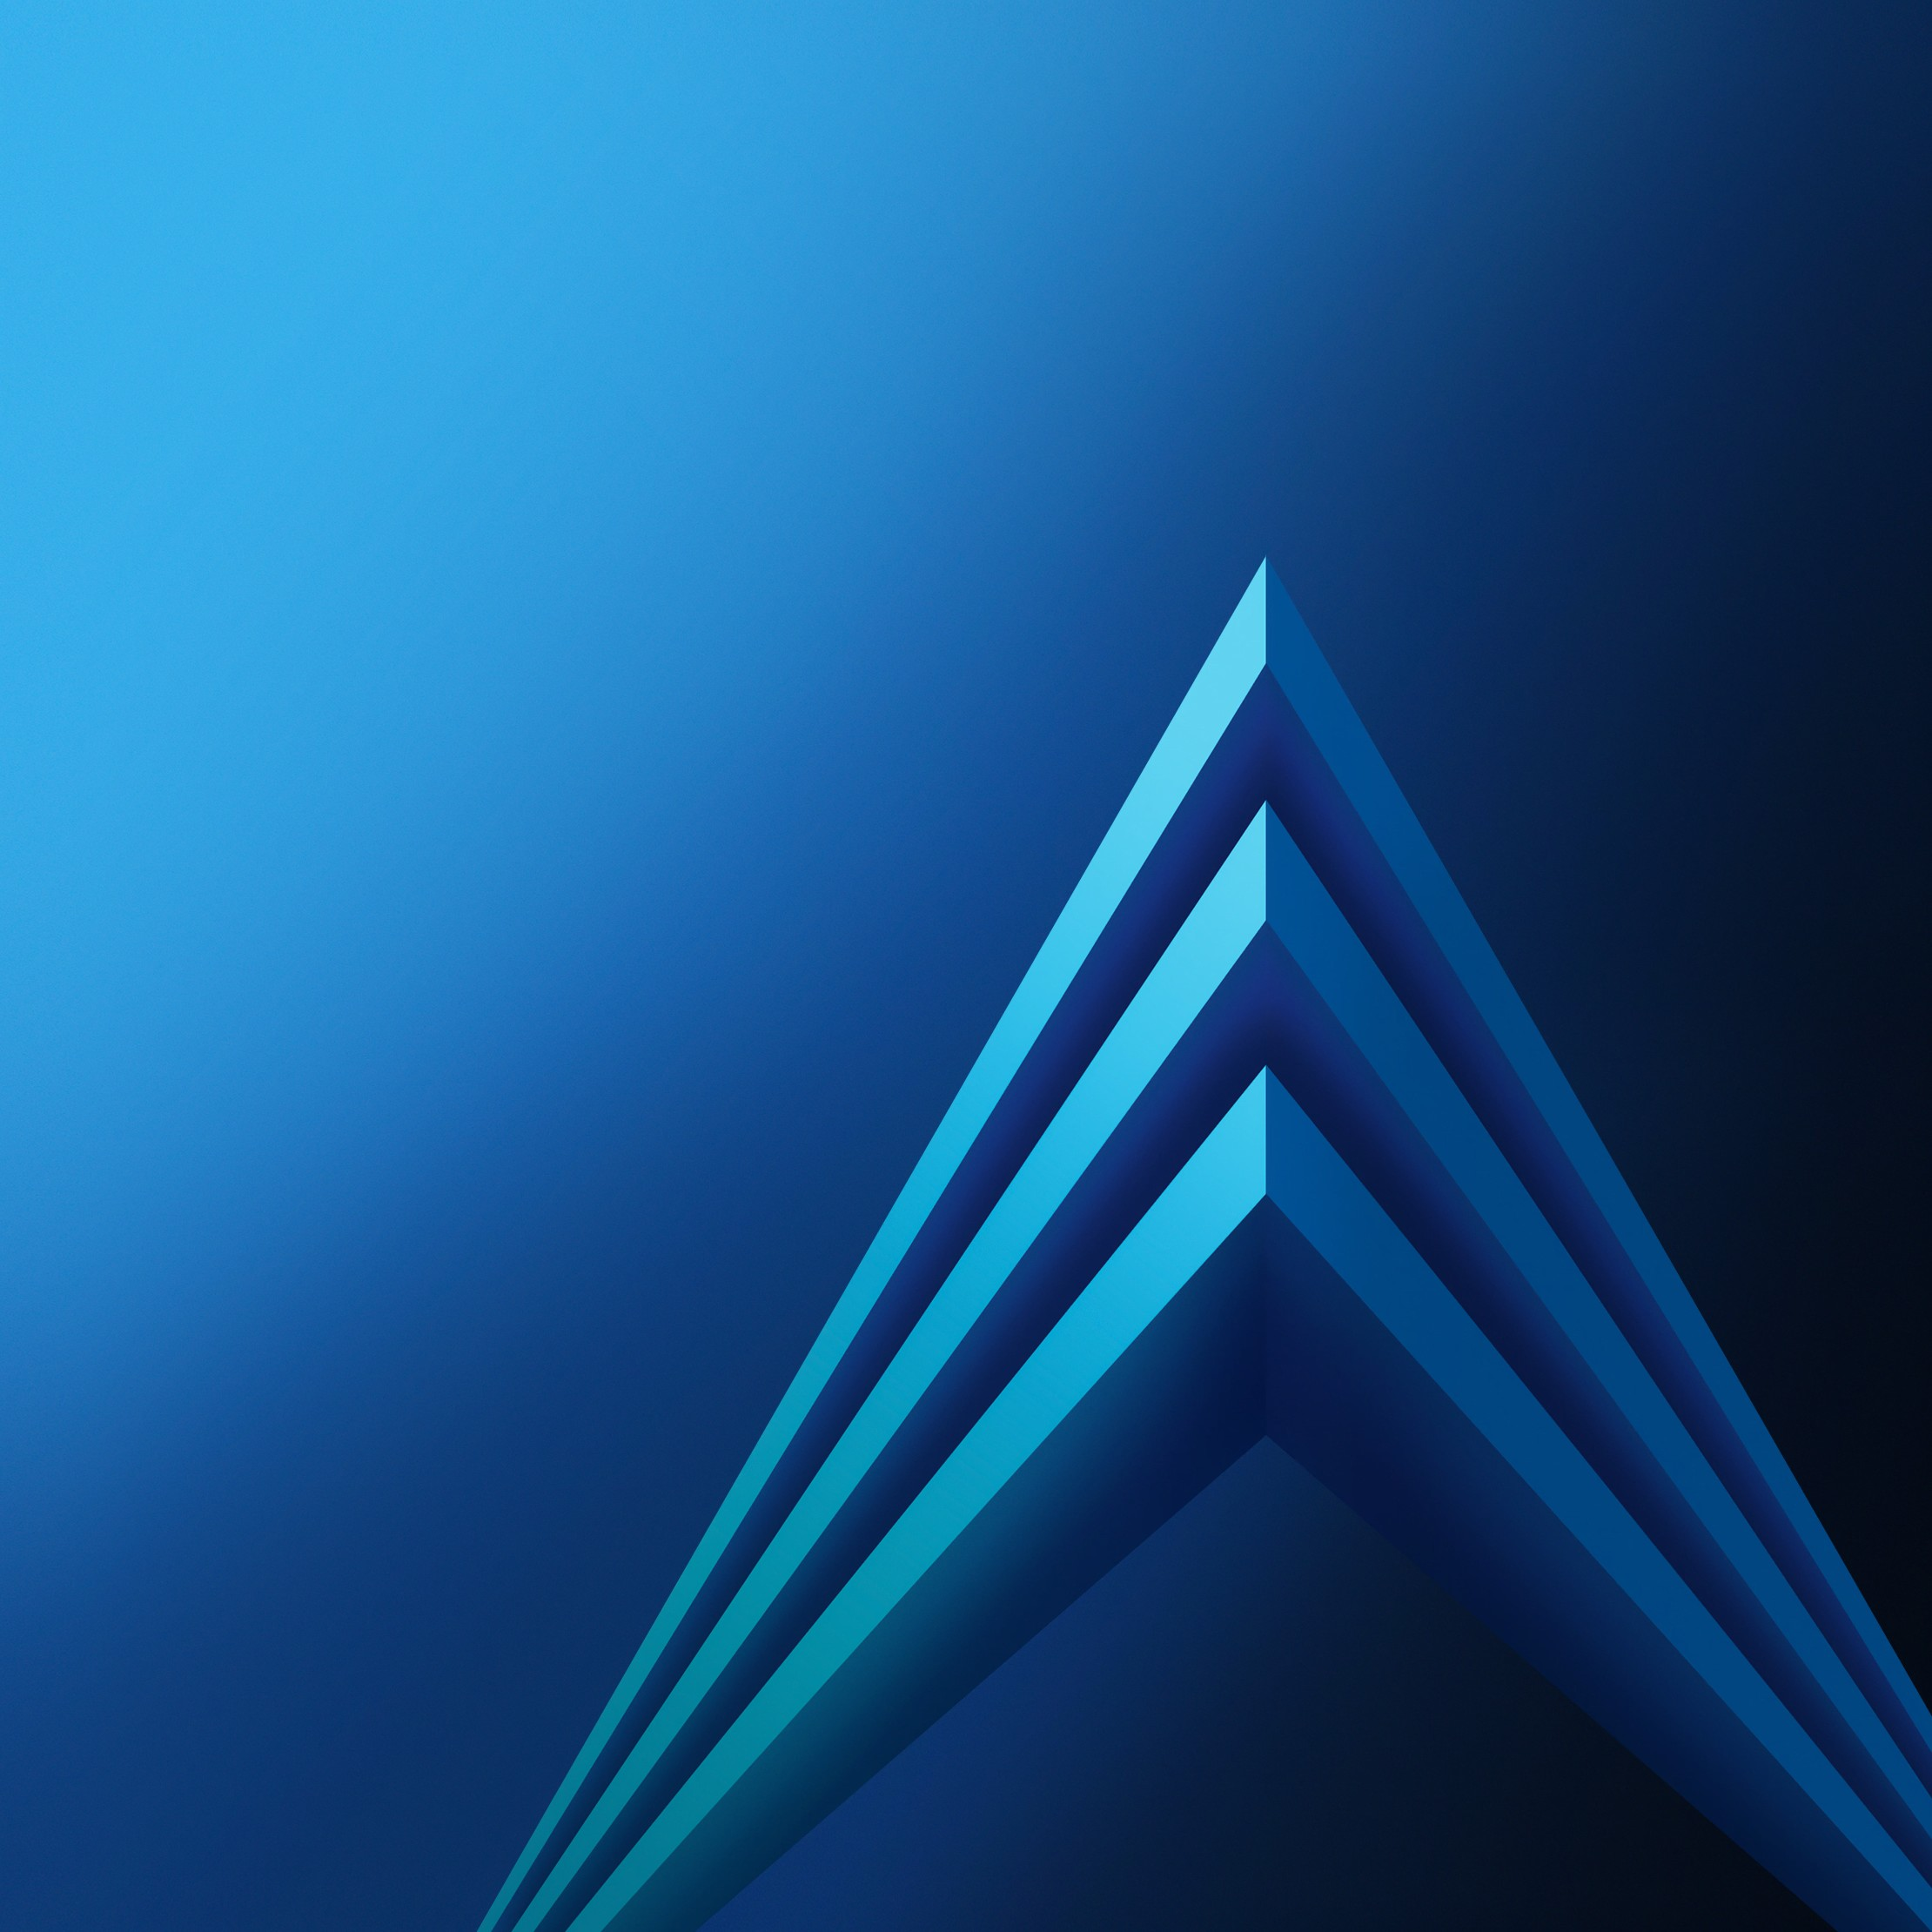 Samsung Galaxy A8 2018 Stock Wallpapers Hd